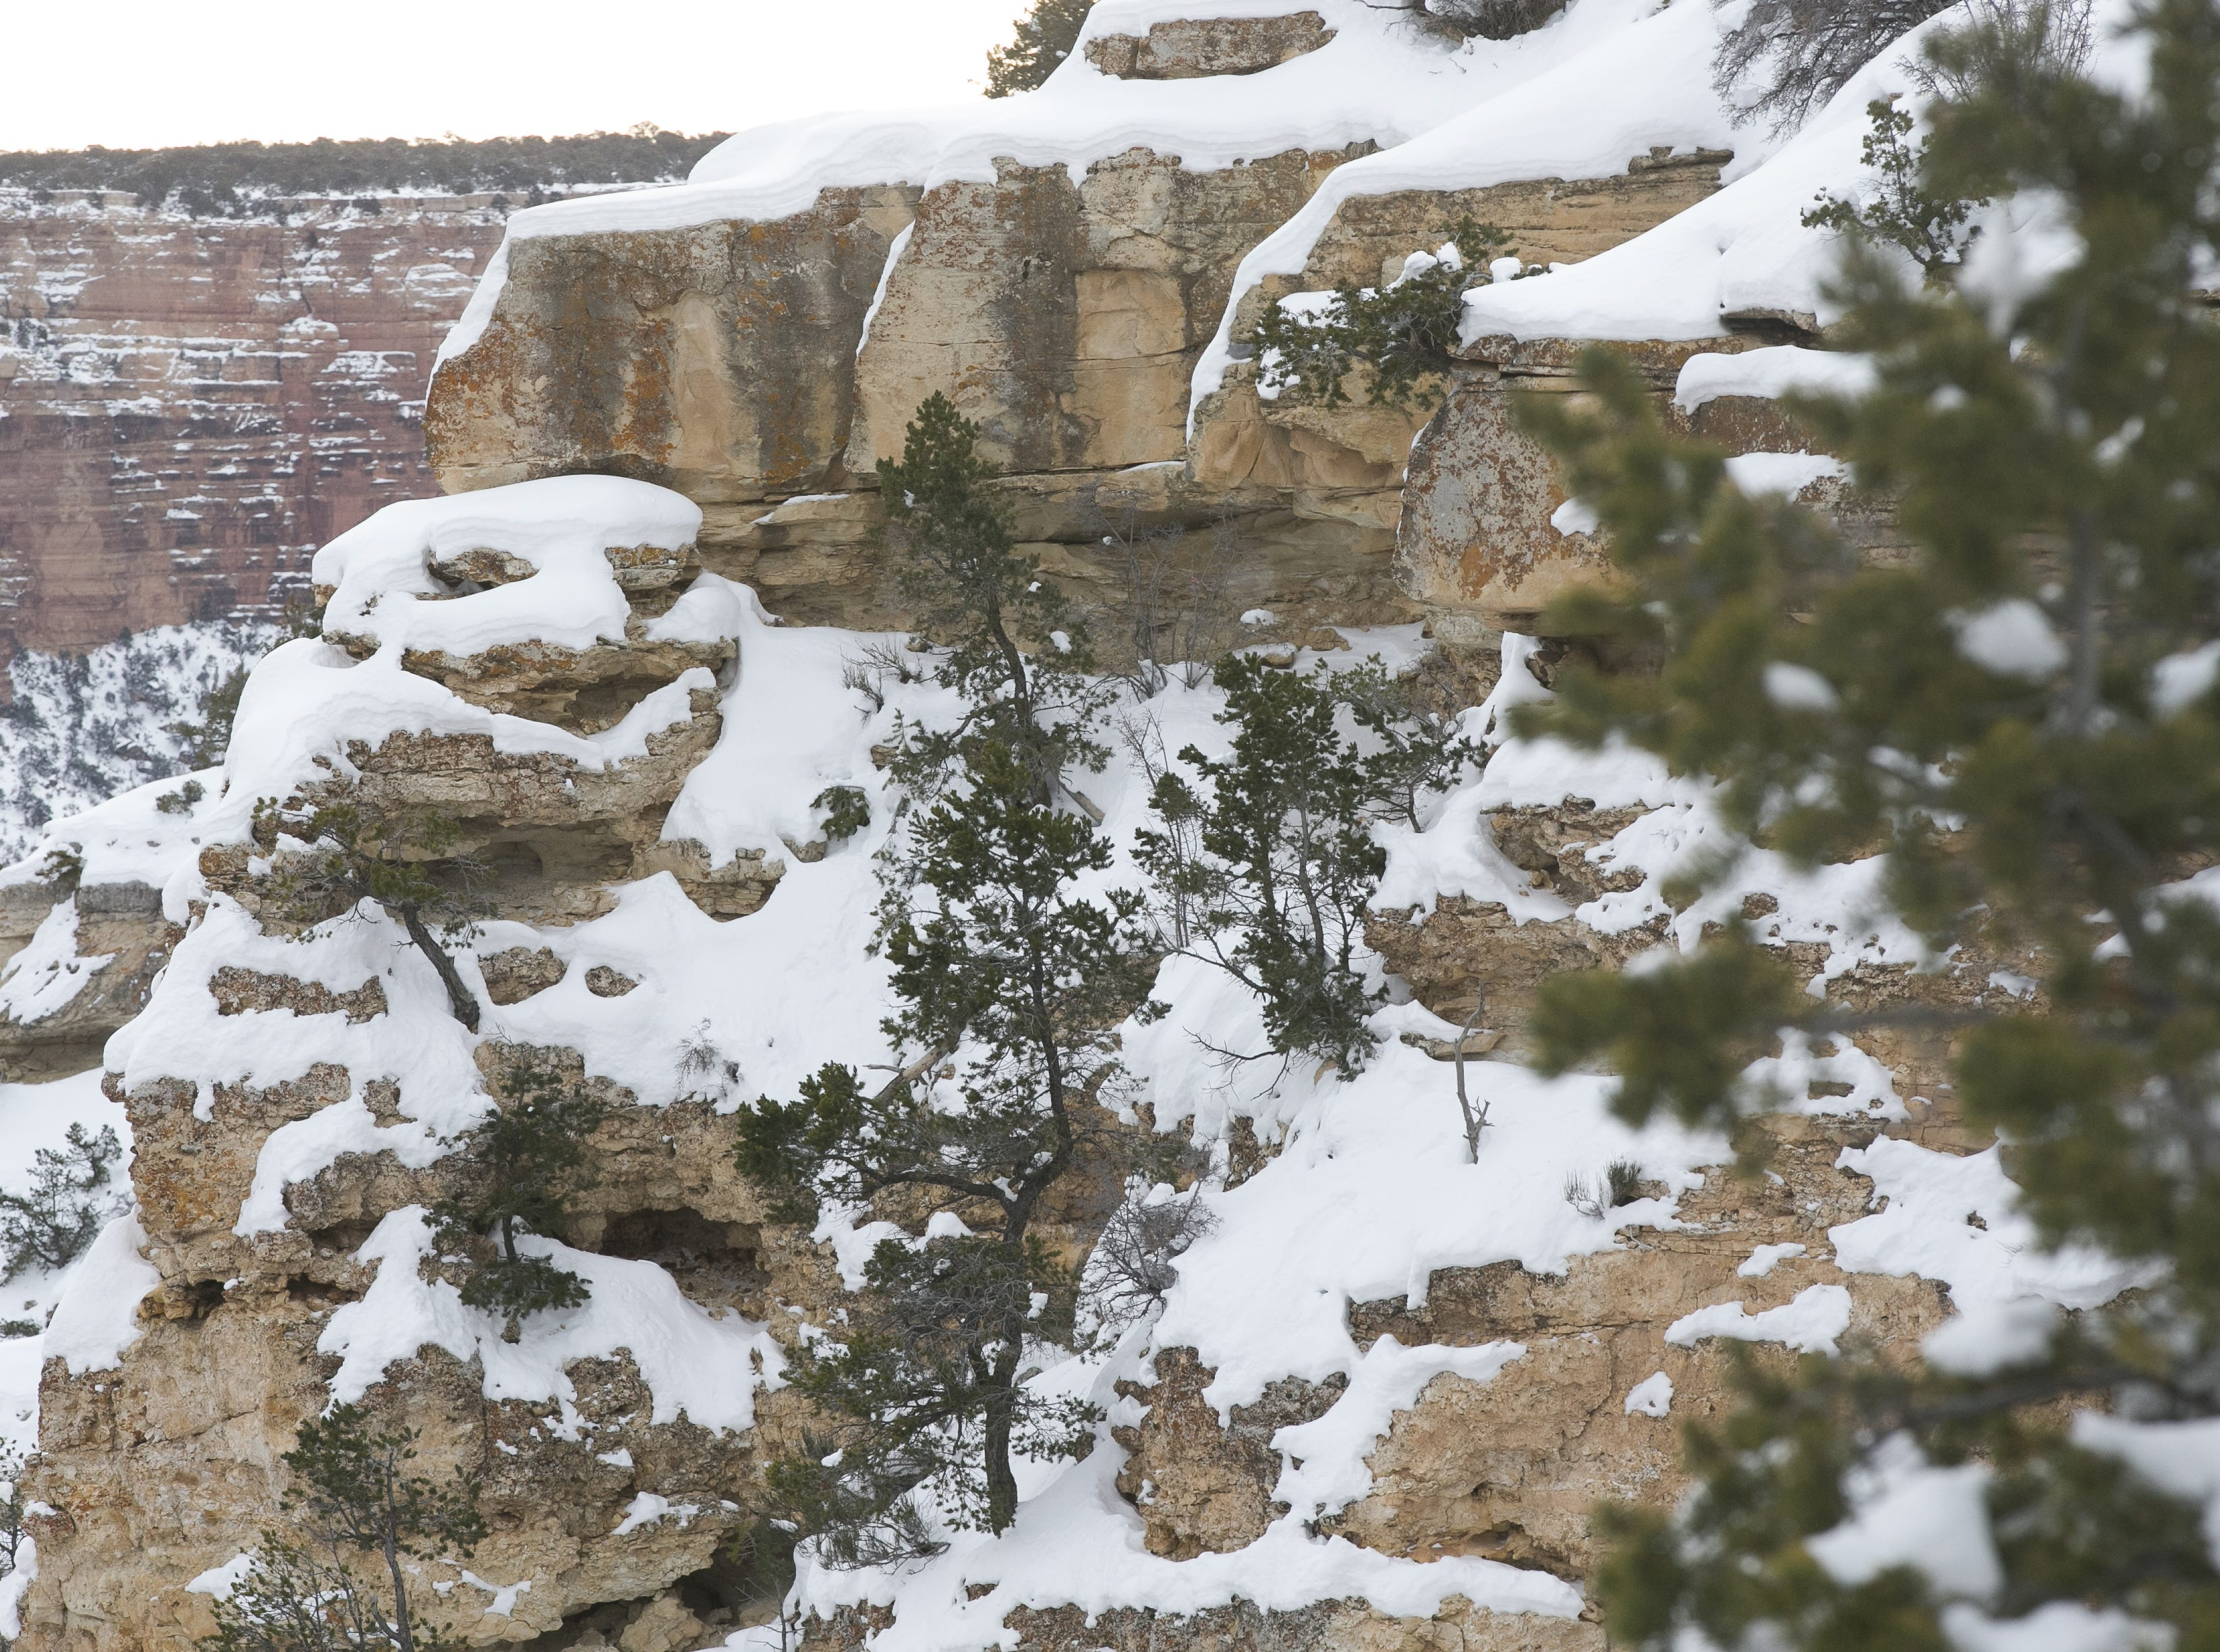 Snow rests on the Grand Canyon on Feb. 24, 2019.